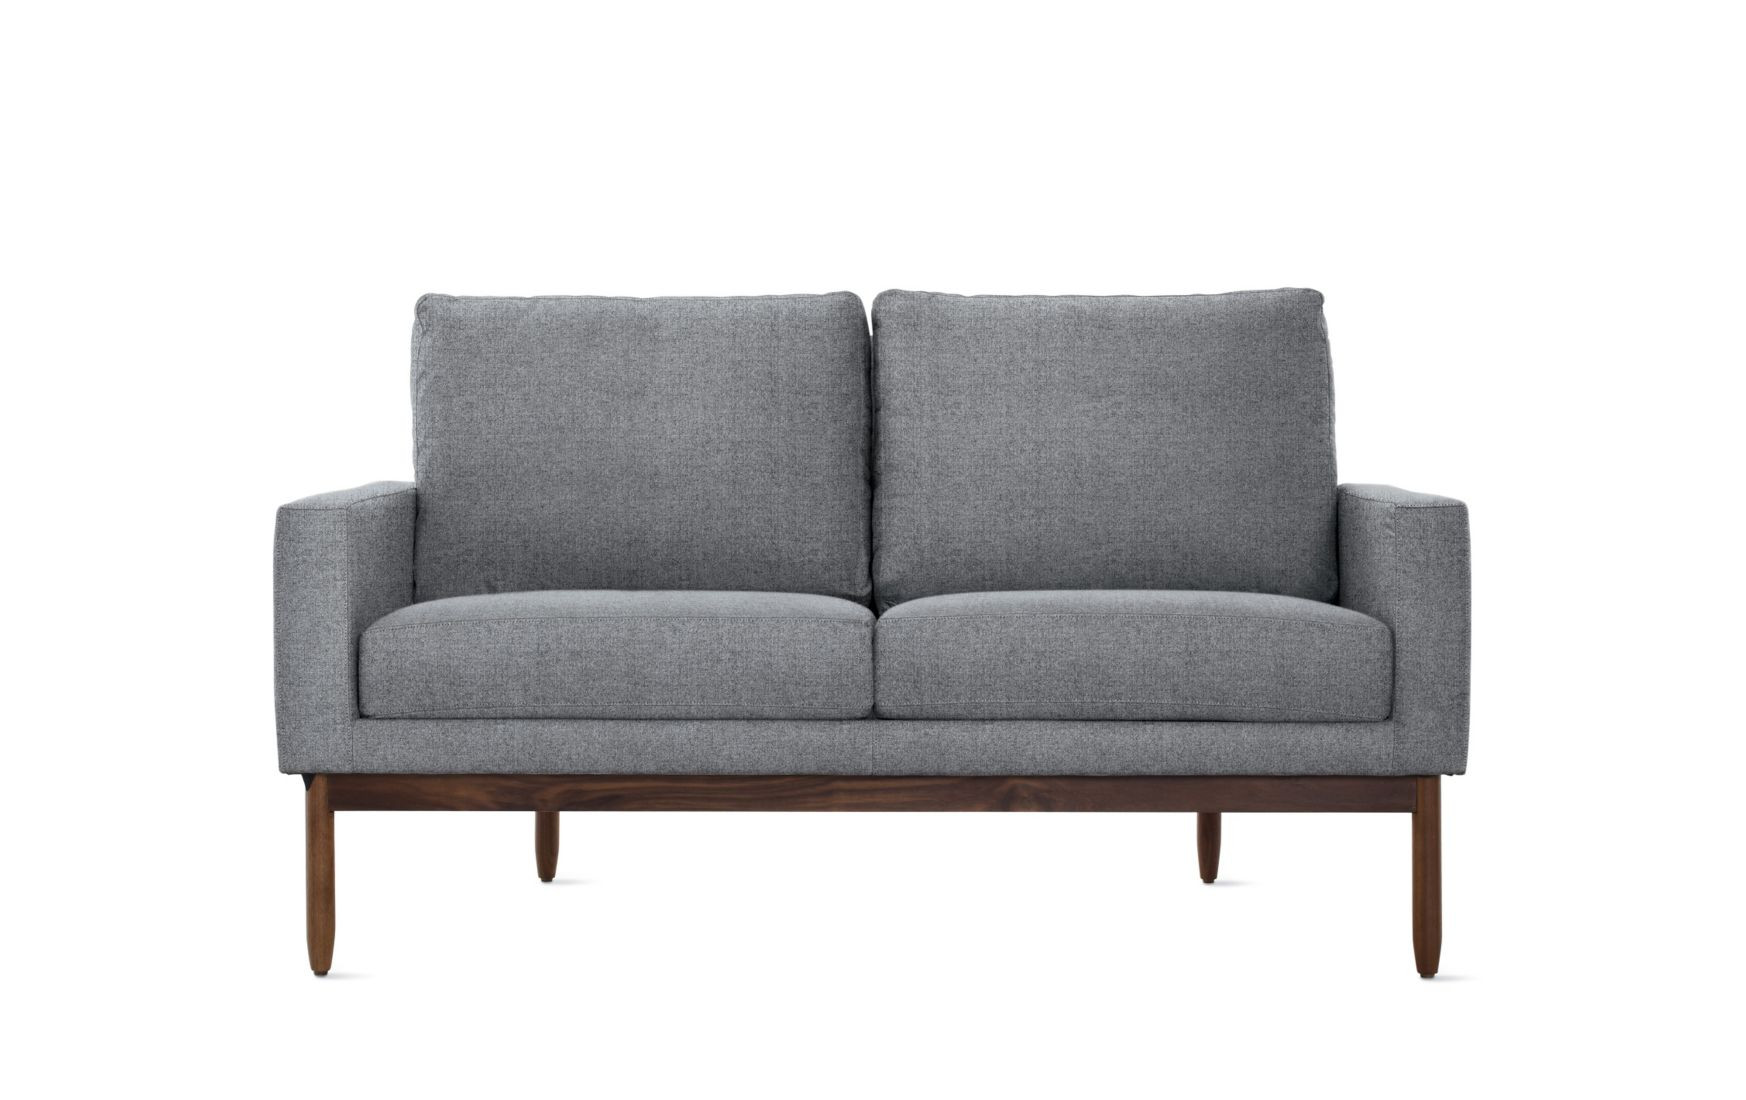 DWR Raleigh Two-Seater Sofa